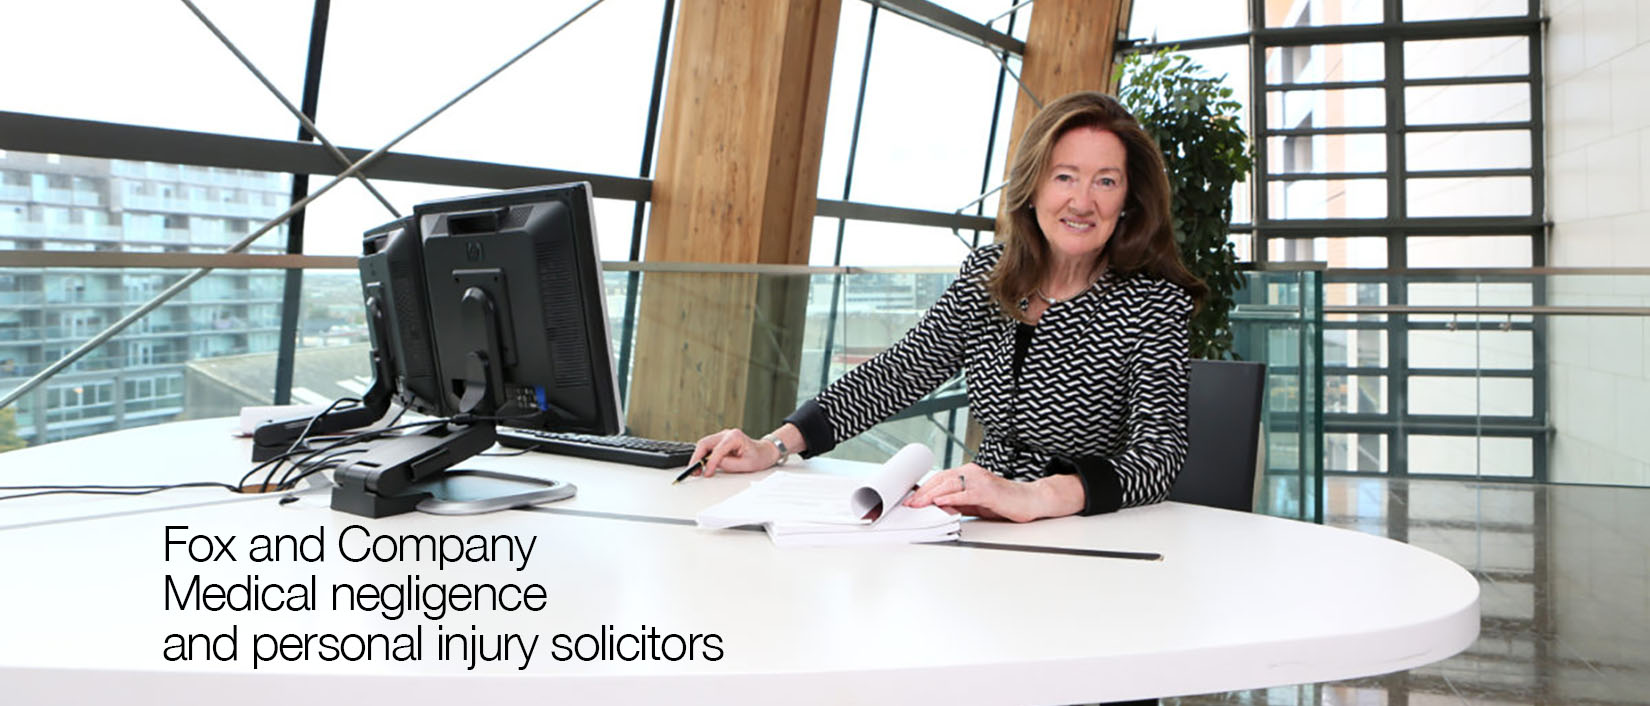 Ann-Fox-medical-negligence-personal-injury-solicitor-best